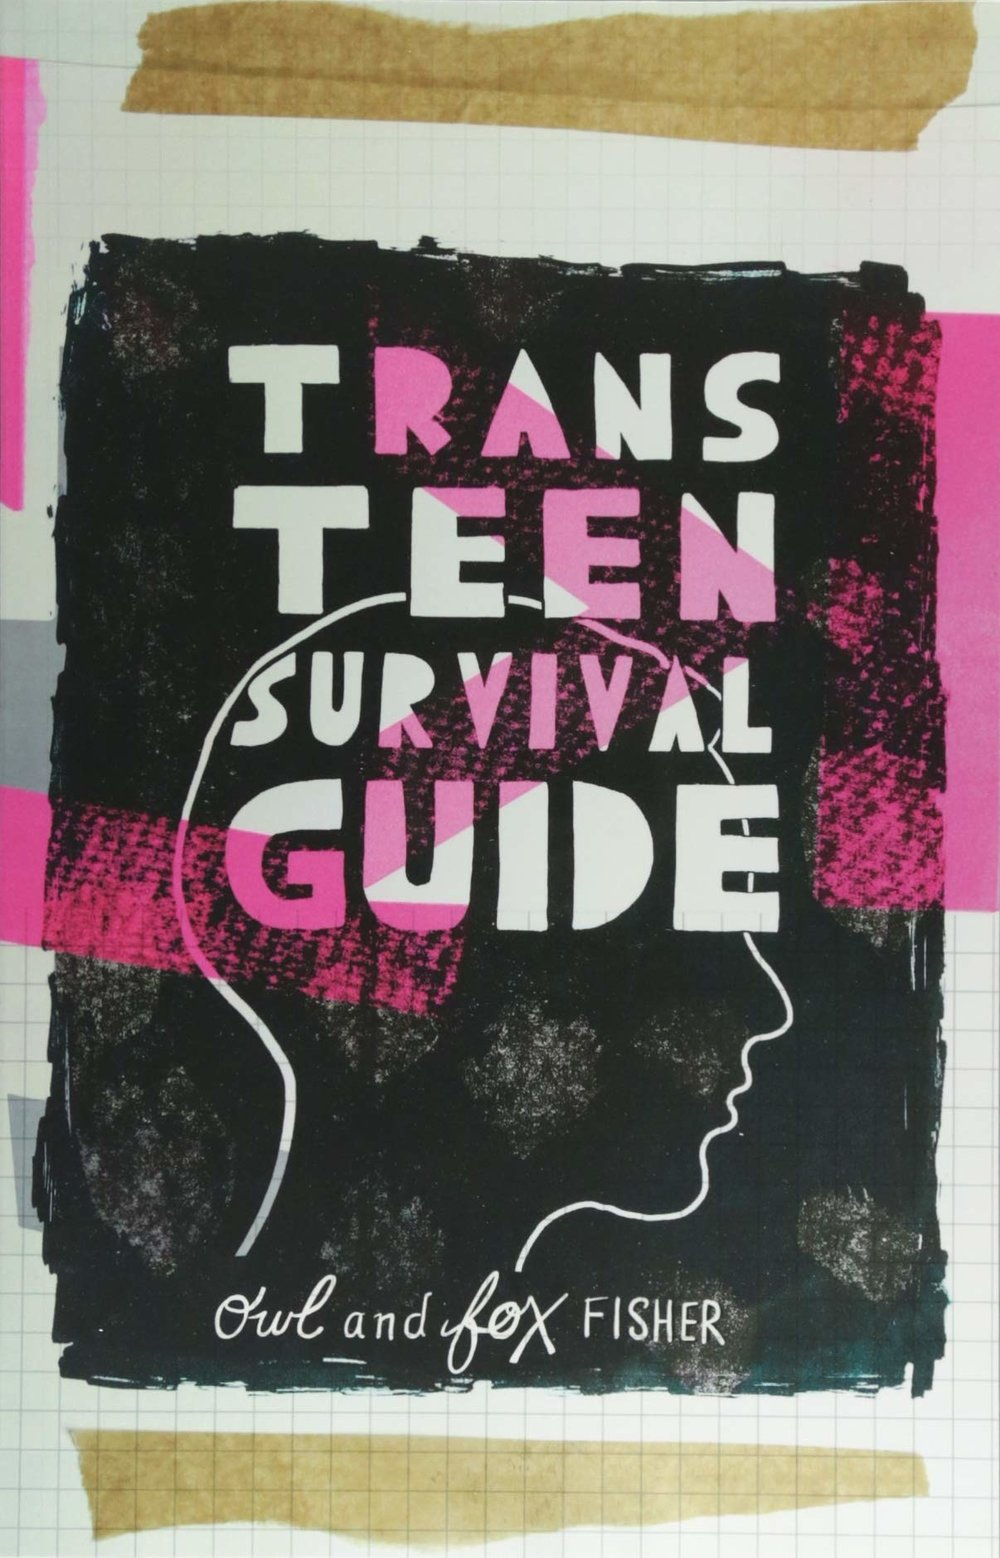 TRANS TEEN SURVIVAL GUIDE Young Adult, Jessica Kingsley Publishers, 224 pages, 2018  Wondering how to come out to your family and friends, what it's like to go through cross hormonal therapy or how to put on a packer? Trans youth activists Fox and Owl have stepped in to answer everything that trans teens and their families need to know.  With a focus on self-care, expression and being proud of your unique identity, the guide is packed full of invaluable advice from people who understand the realities and complexities of growing up trans. Having been there, done that, Fox and Owl are able to honestly chart the course of life as a trans teen, from potentially life-saving advice on dealing with dysphoria or depression, to hilarious real-life awkward trans stories.